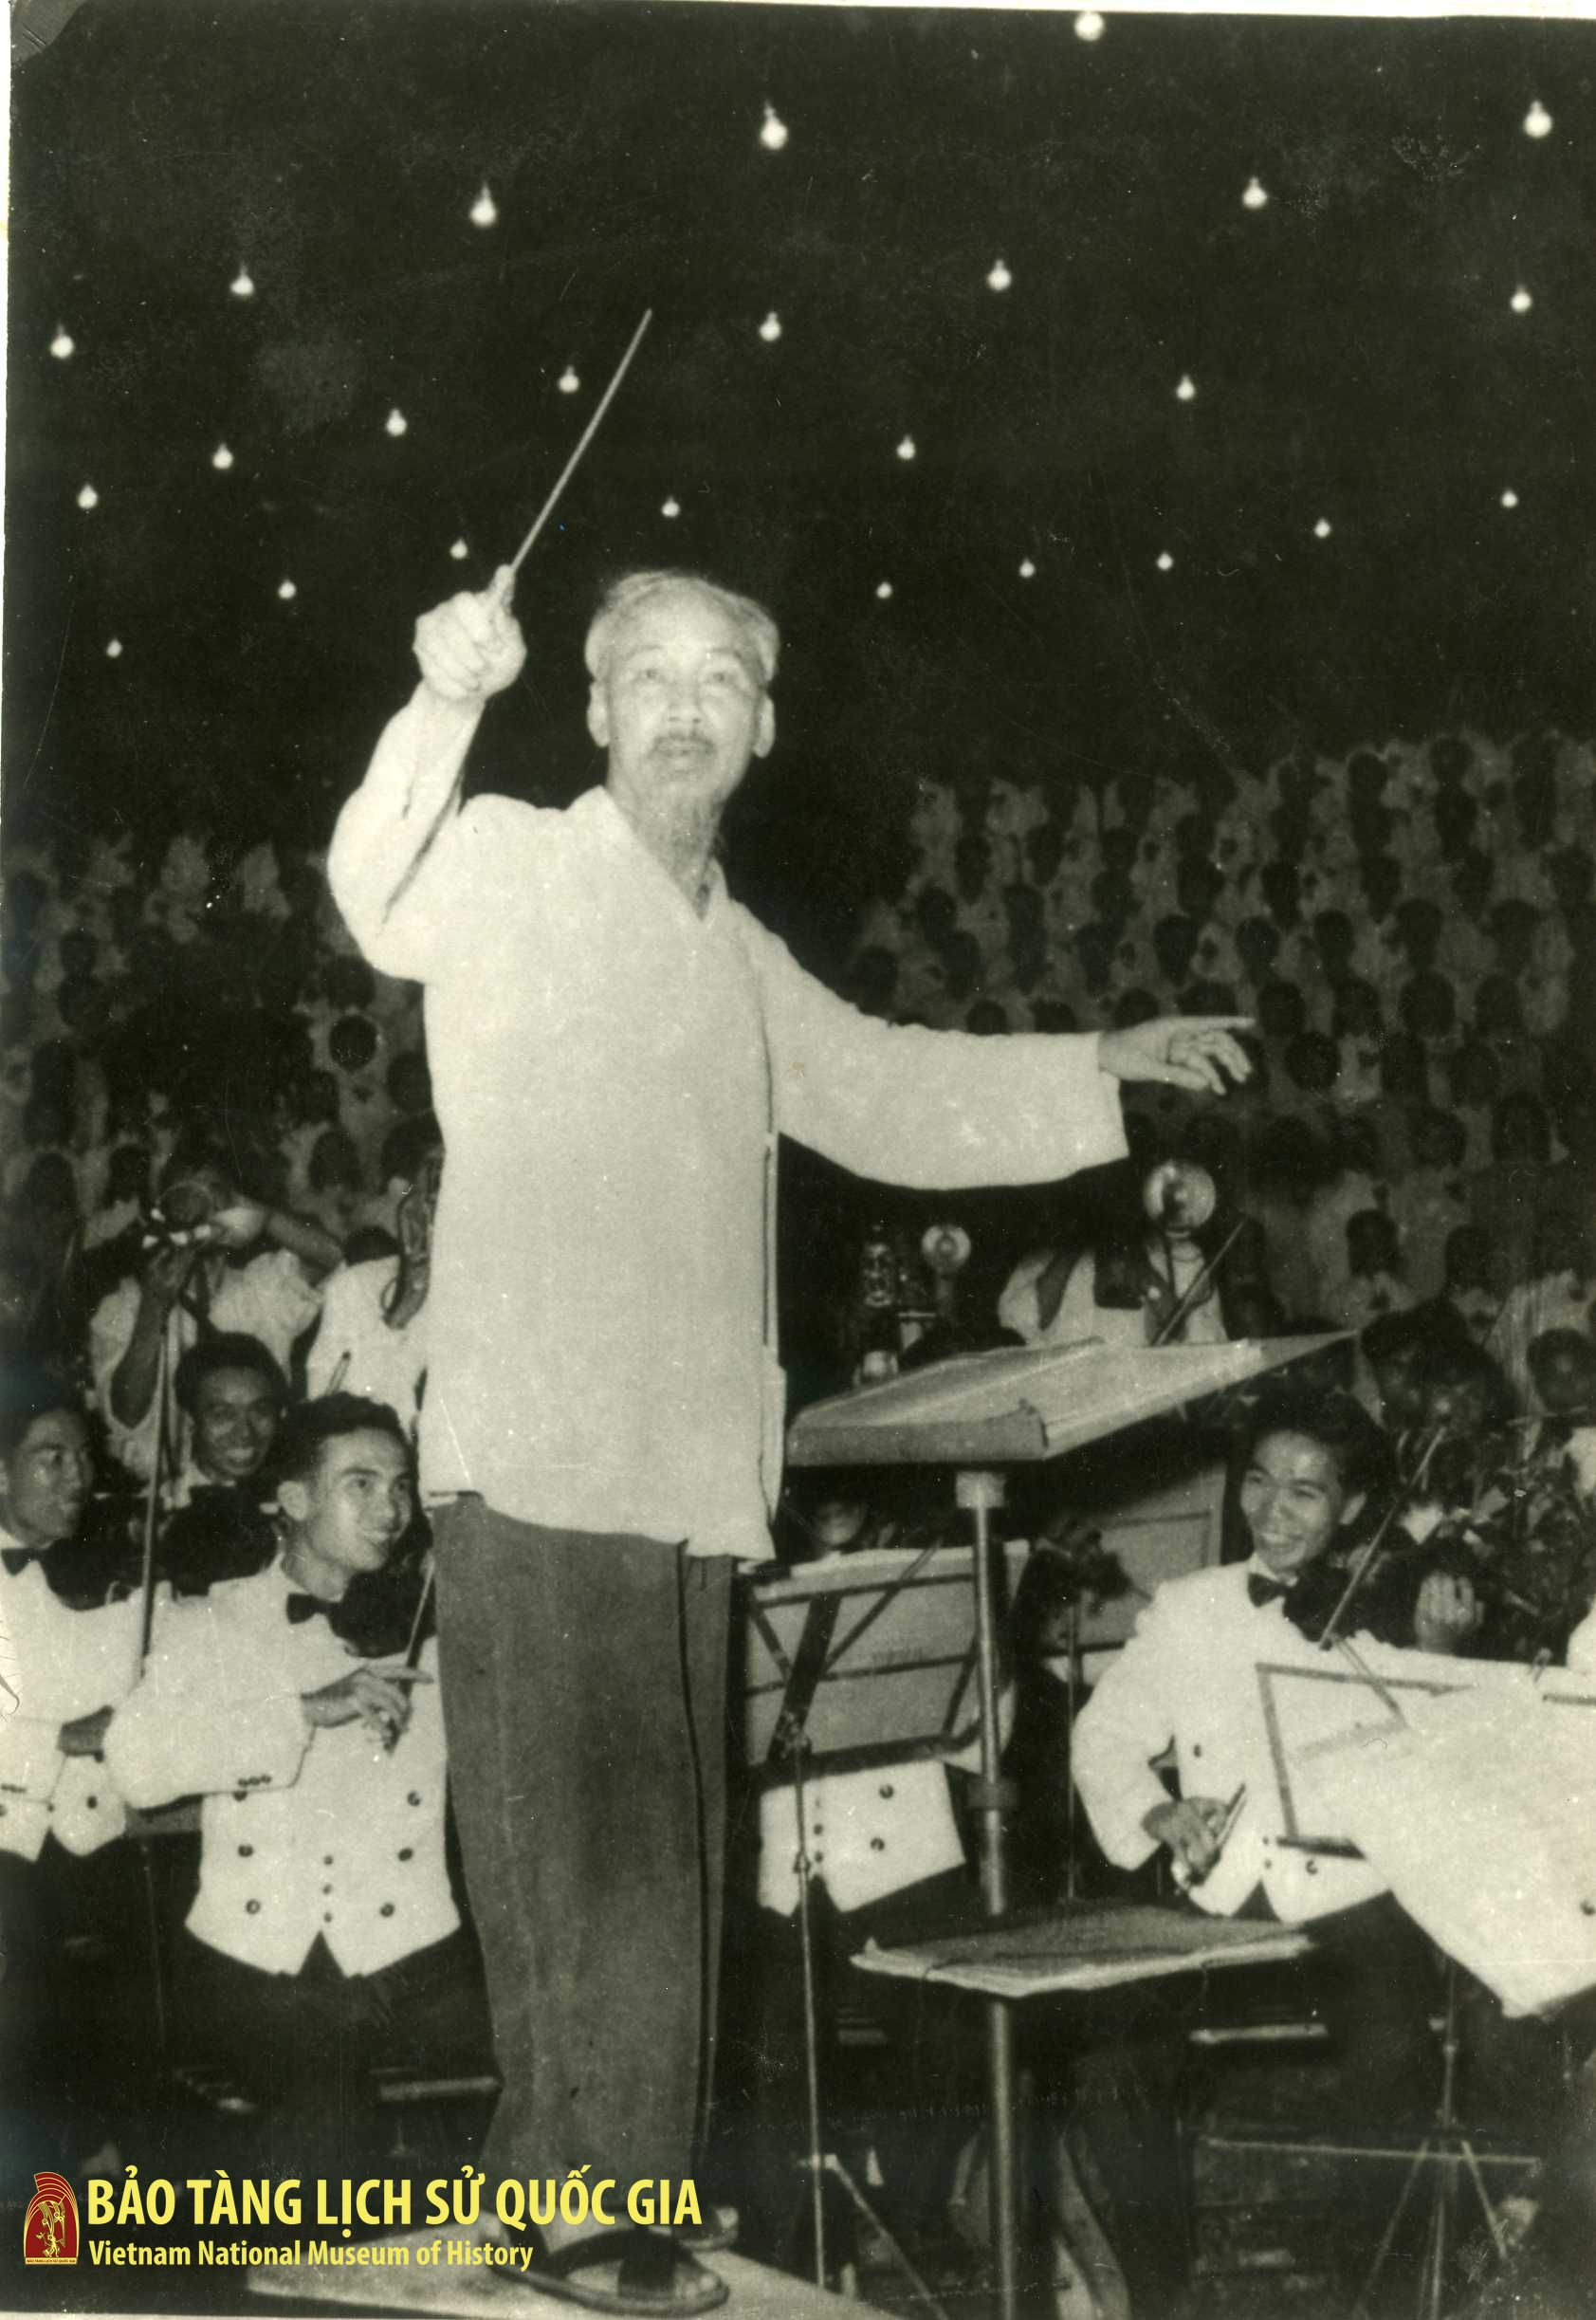 President Ho Chi Minh conducting the national philharmonic orchestra and choir in a performance of the song 'Ket Doan'